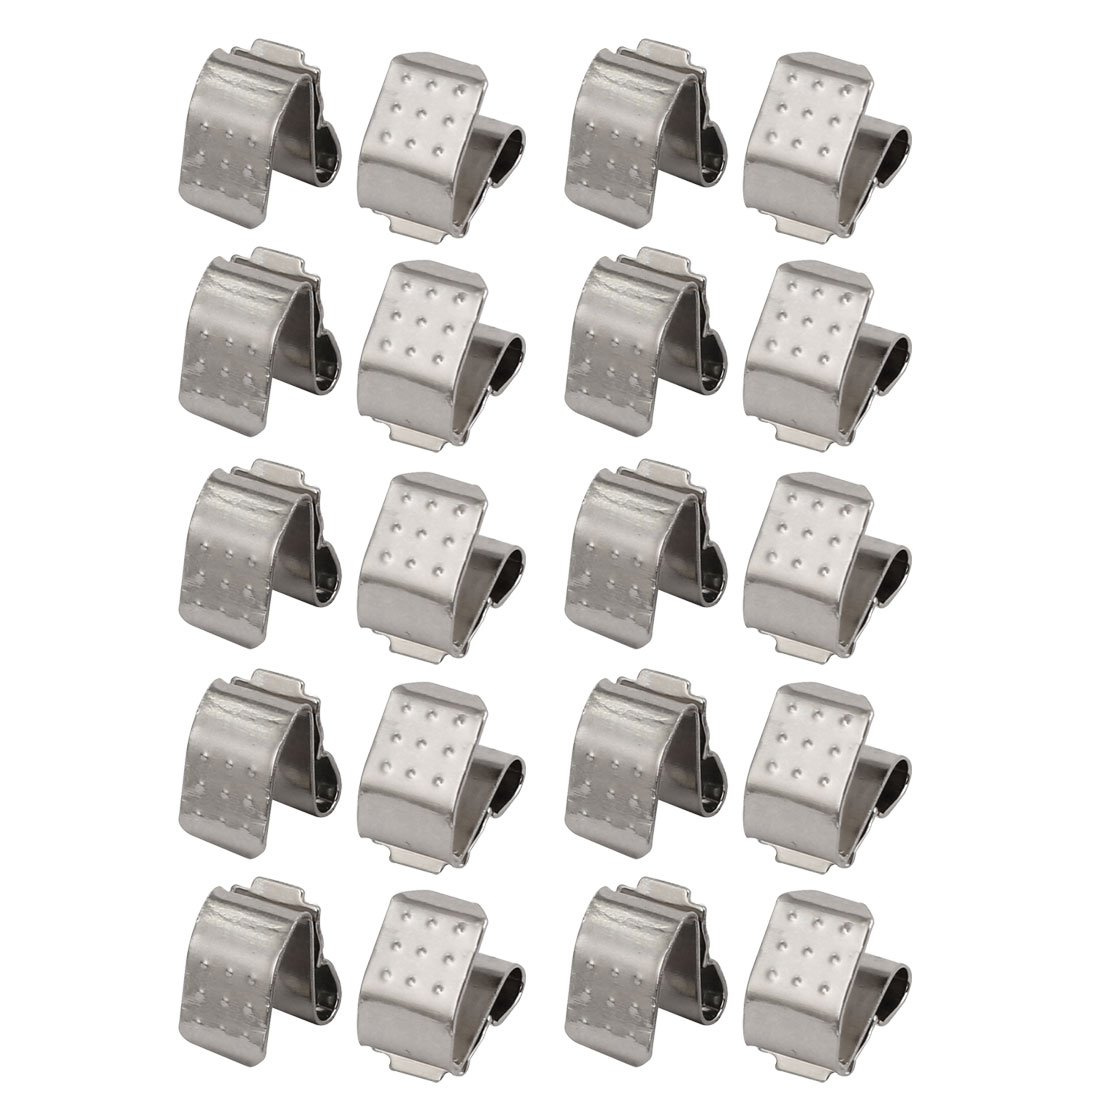 uxcell® 20 Pcs Silver Tone Metal AAA Battery Plate Shrapnel Clamp BC-204